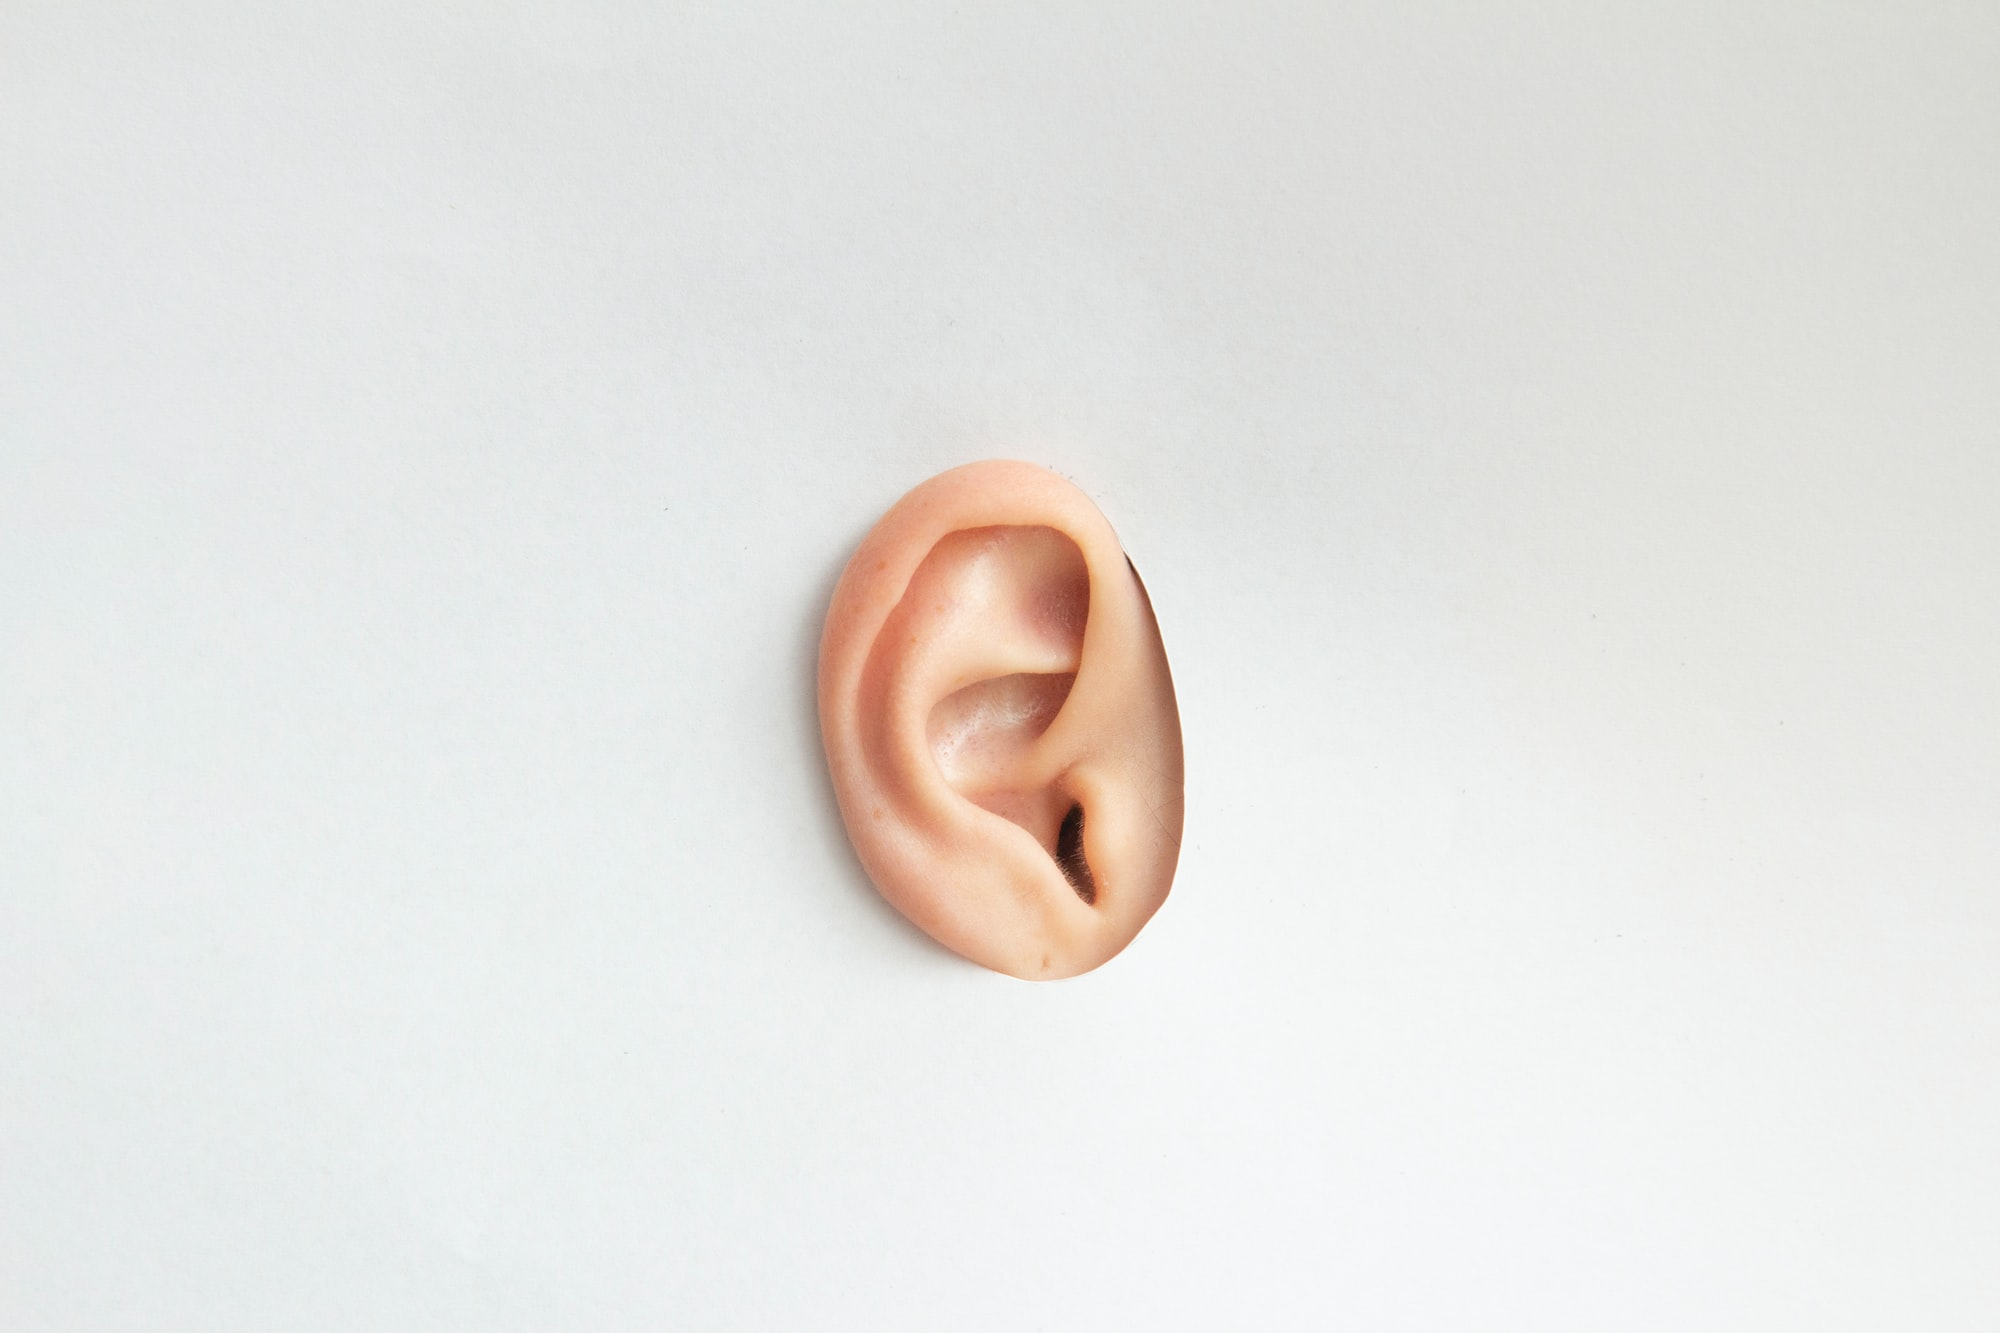 Ear on a white cardboard